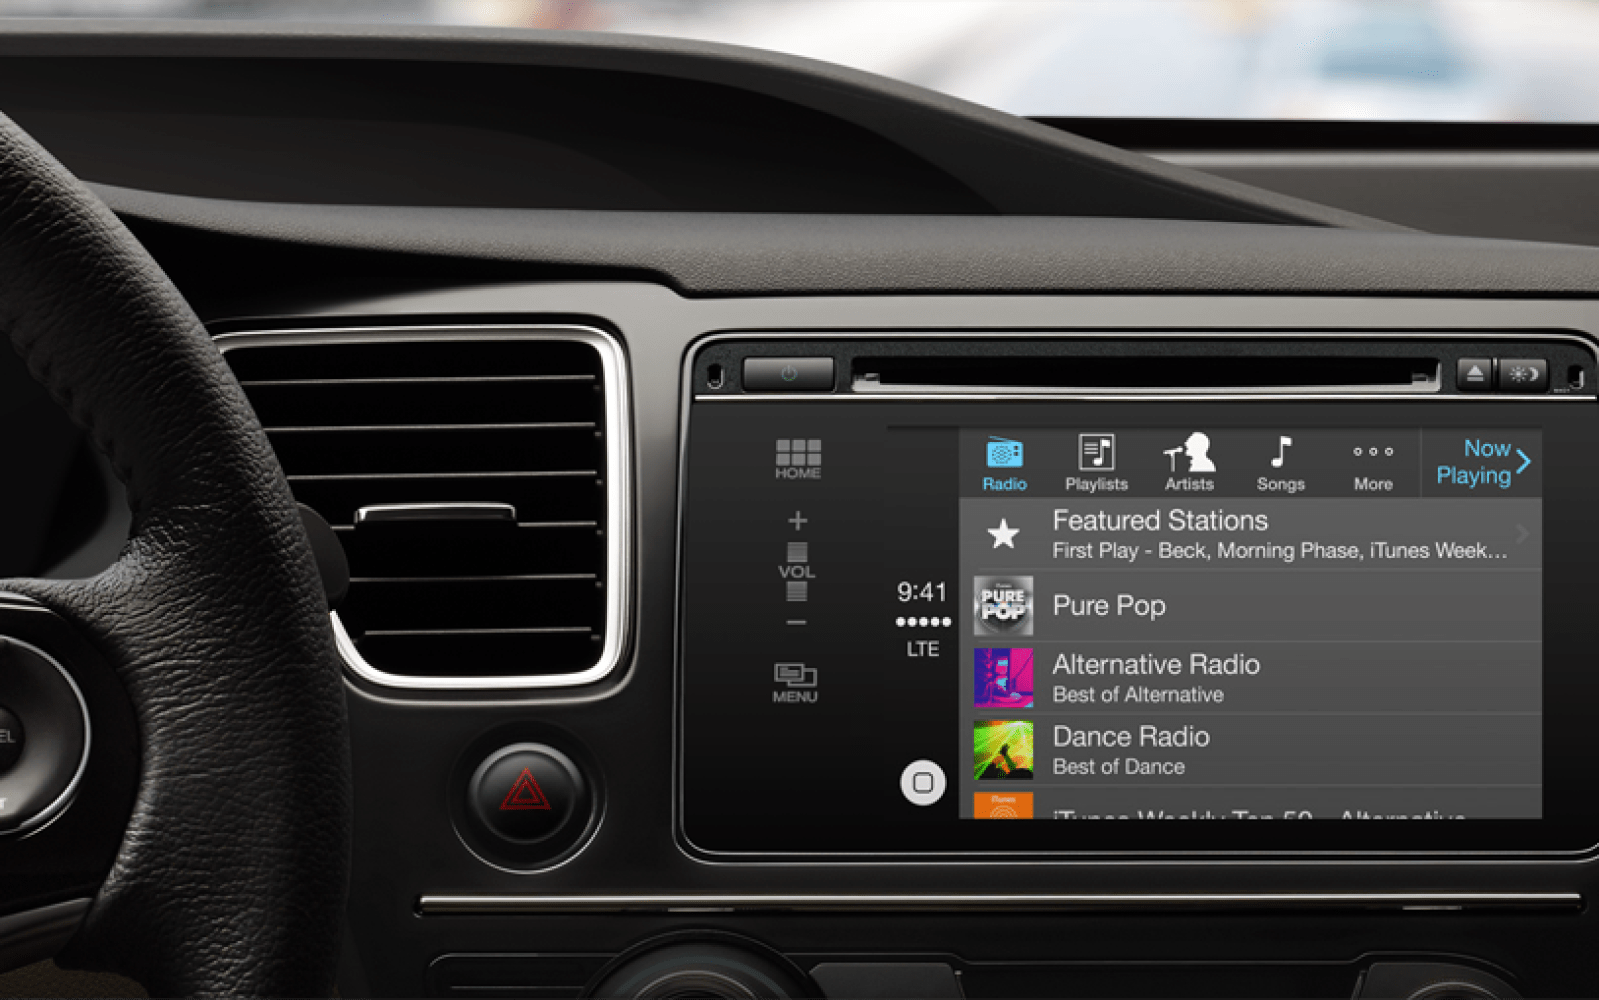 GM says 14 models of its Chevy-branded cars will feature CarPlay this year